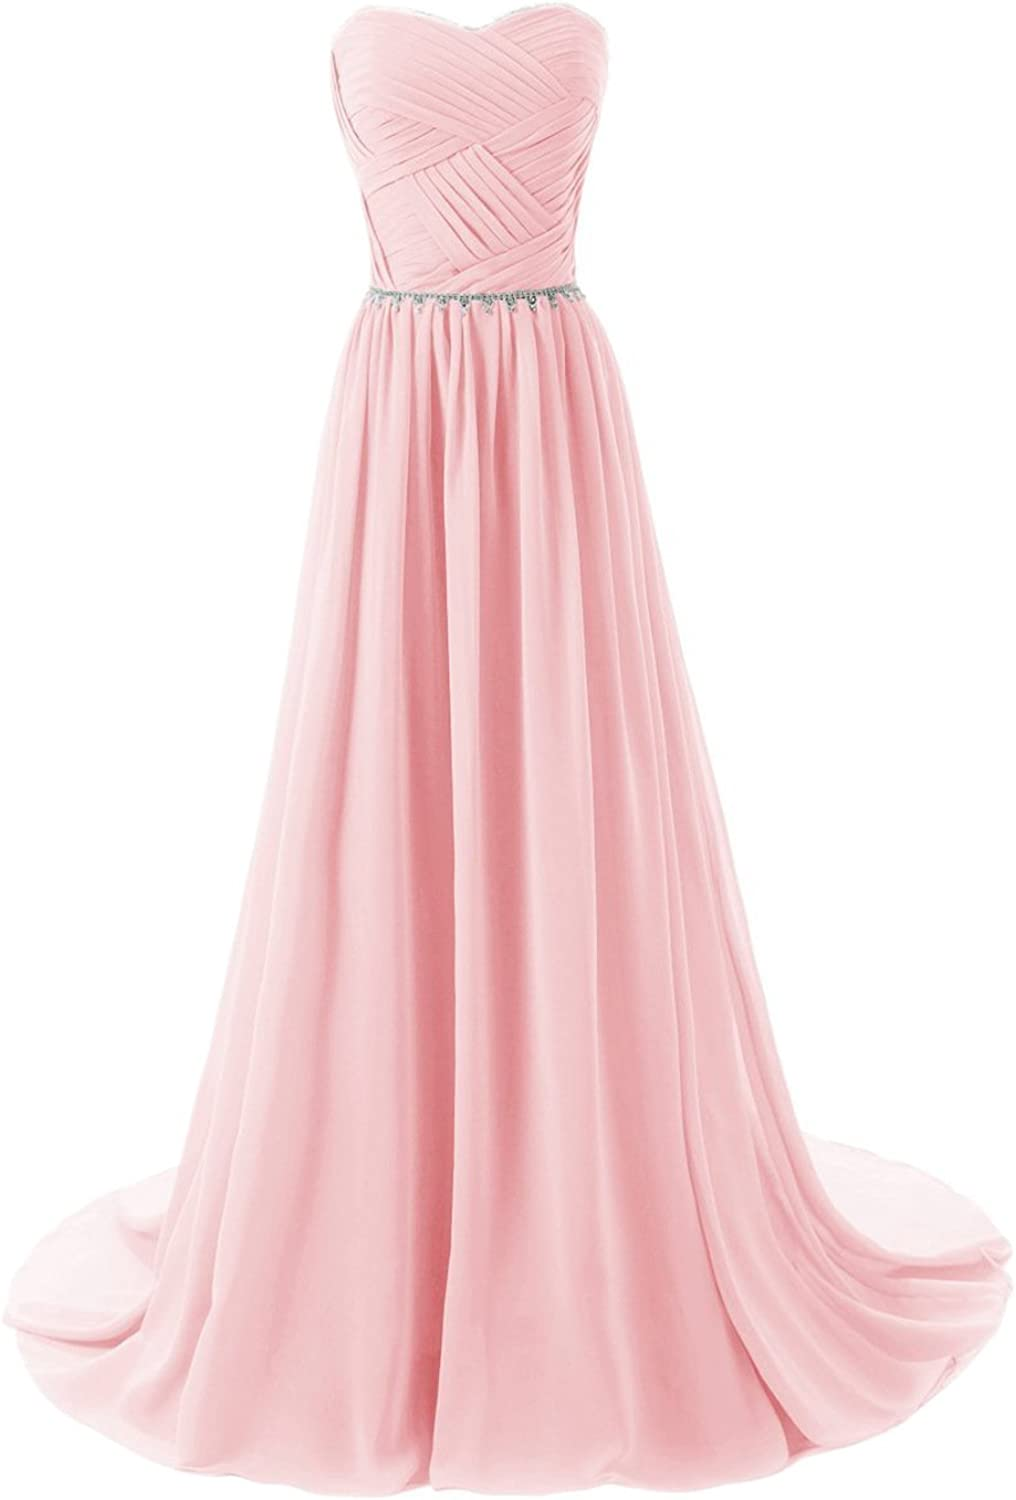 JoyVany Women Sweetheart Long Bridesmaid Evening Prom Dresses 2018 Formal Gowns Pink Size 8